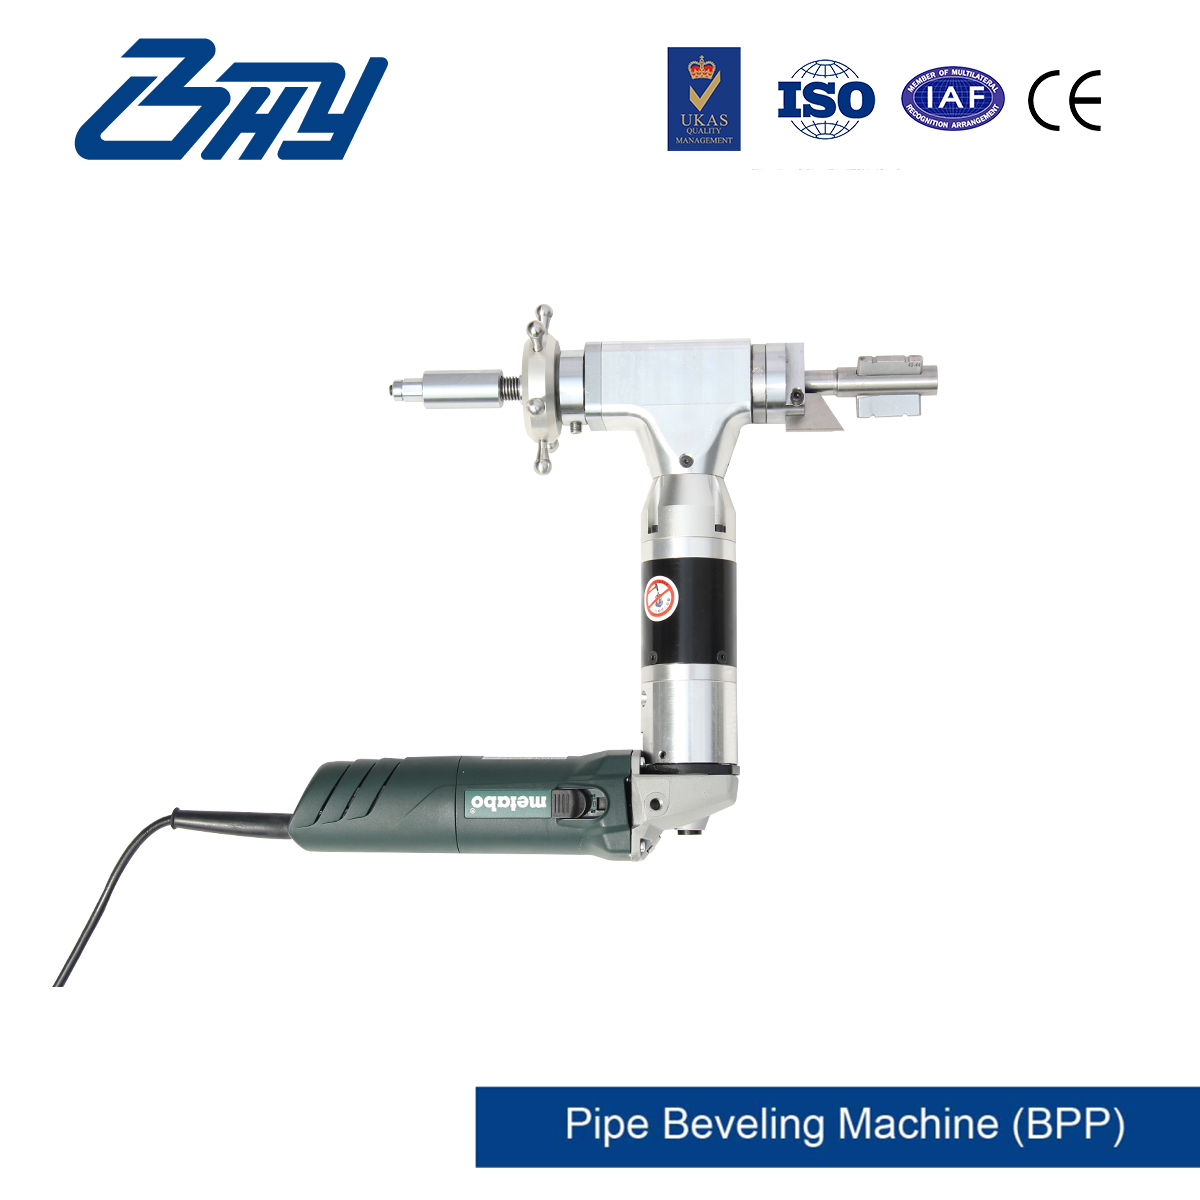 ID Mounted Pipe Beveling Machine